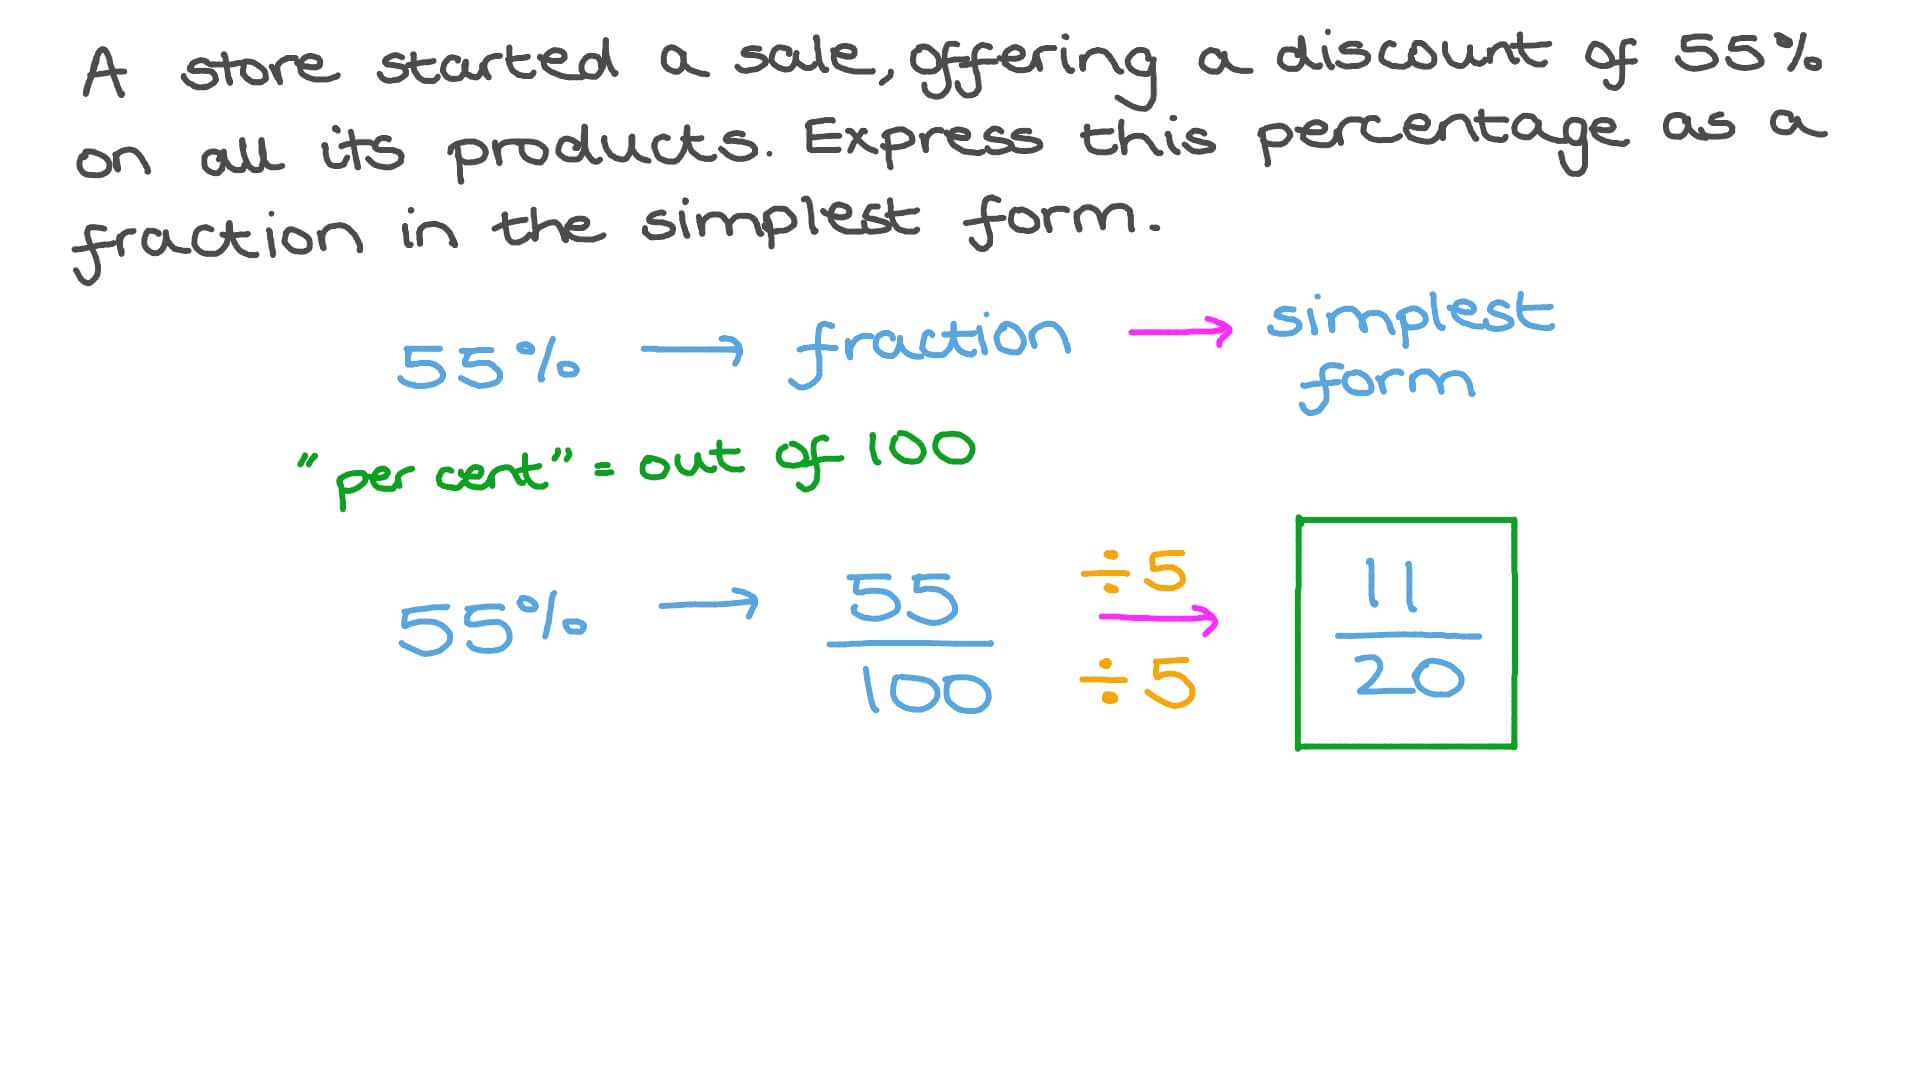 simplest form percent as a fraction  Converting Percentages to Fractions in the Simplest Form